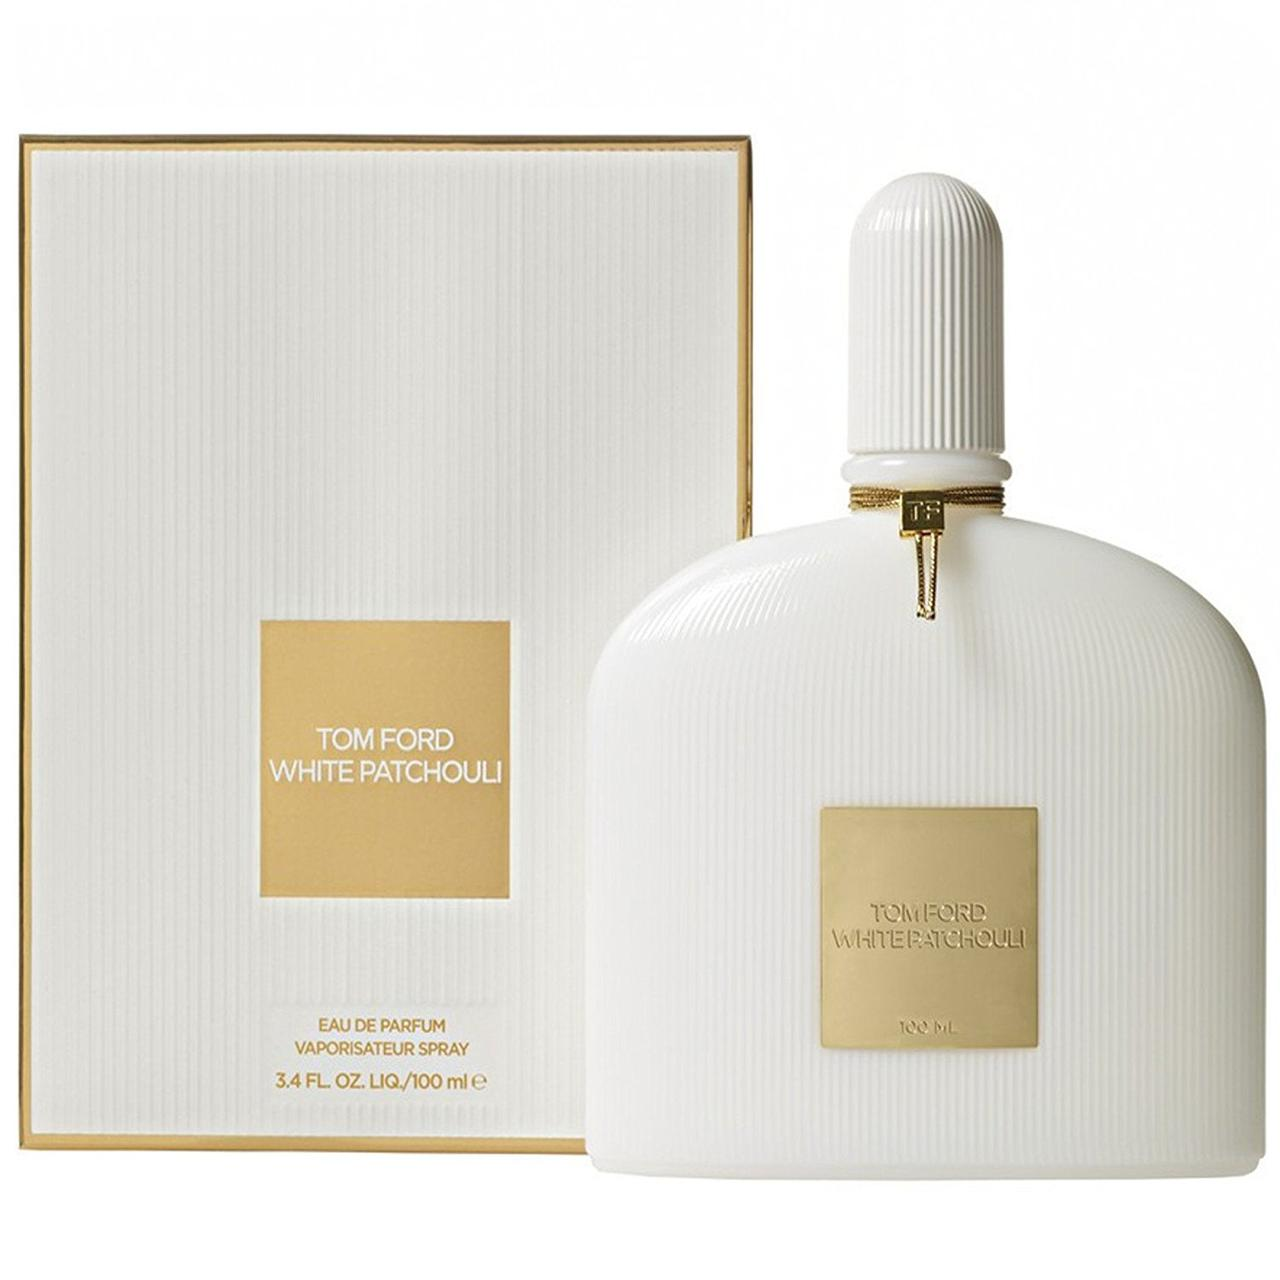 TOM FORD WHITE PATCHOULI TESTER